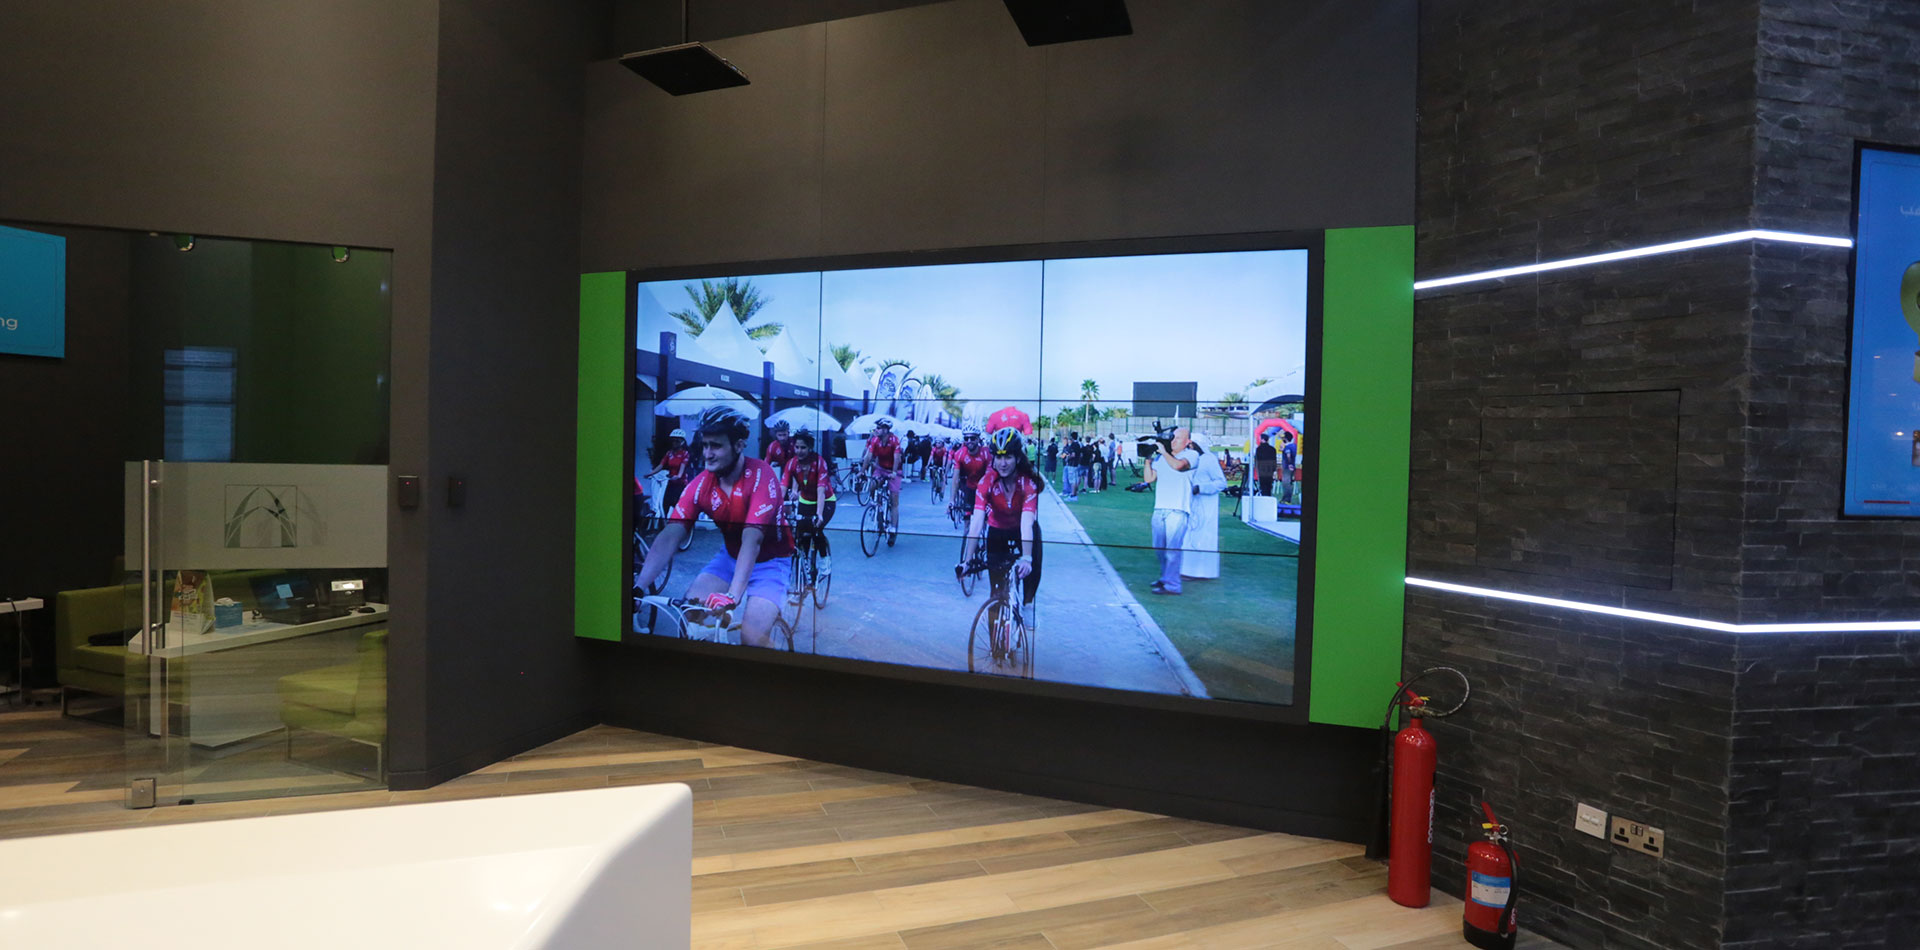 LED Display playing Cycling video